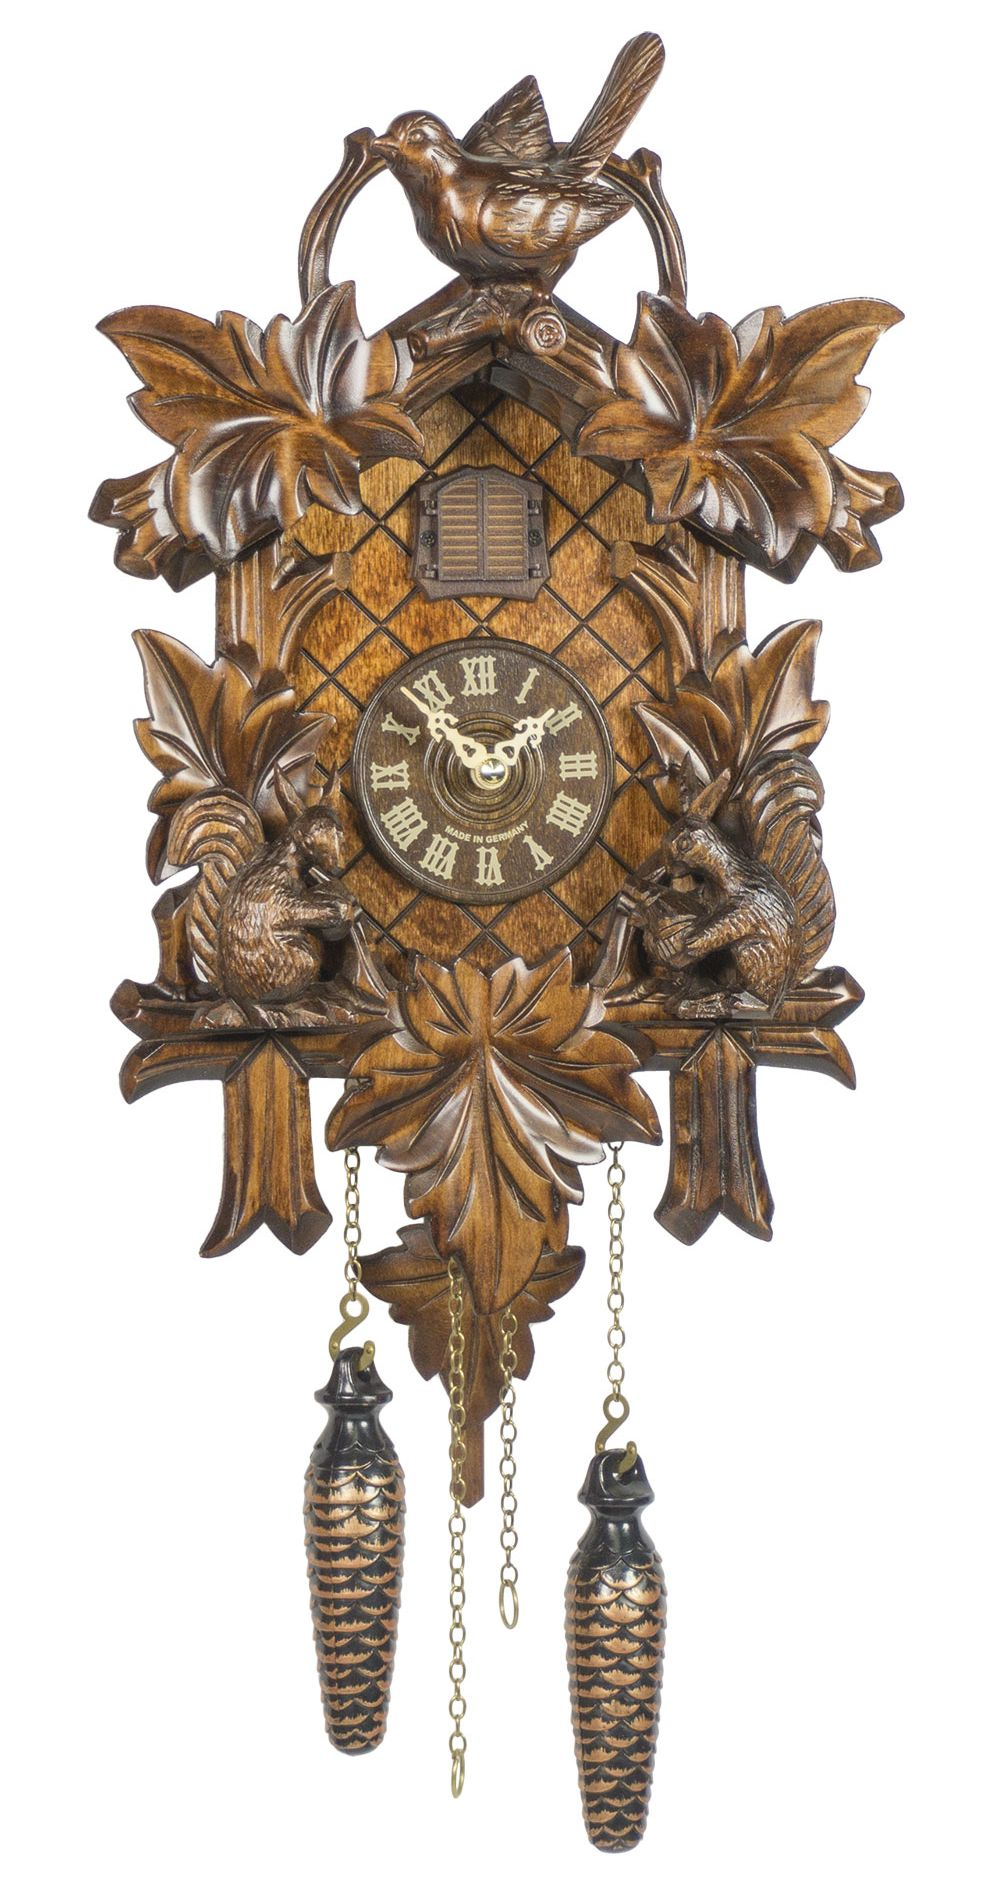 Quartz Cuckoo Clock Five Leaves with Bird and Squirrel - Cuckoo Clock Meister